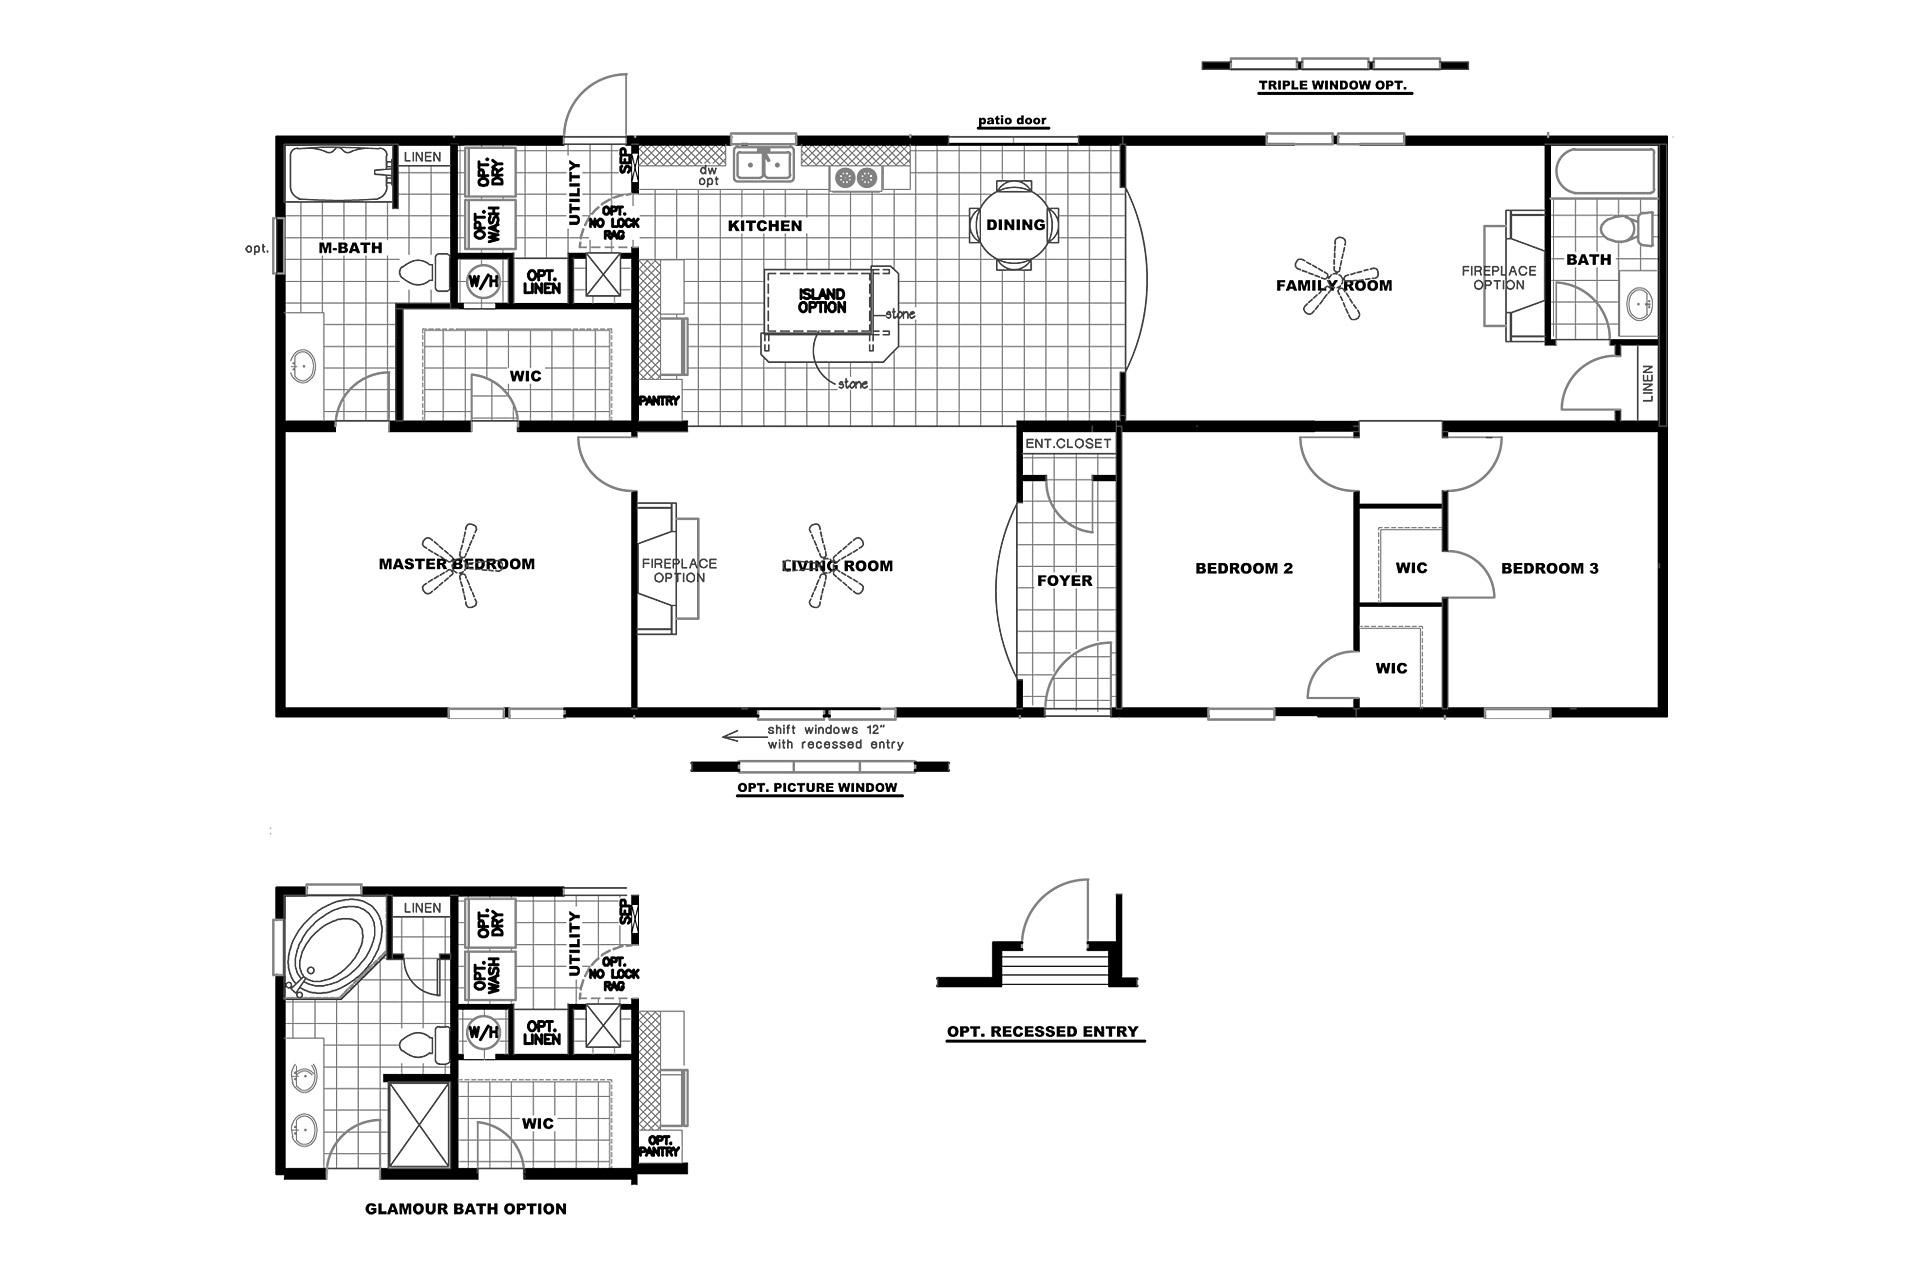 2d3f0f2ec9cc13abbc2dd08732913fa6 Clayton Homestead Mobile Home Floor Plan on richfield clayton homes floor plans, clayton triple wide manufactured homes, 16x60 mobile homes plans, clayton homes floor plans 3 bedrooms, modular home floor plans, columbia builders floor plans, 32x76 mobile home floor plans, find mobile home floor plans, clayton modular homes, clayton park model homes, solitaire mobile home floor plans, 16x70 mobile home floor plans, clayton floor home house plans, 1999 mobile home floor plans, adobe mobile home floor plans, clayton pinehurst mobile home, oakwood mobile home floor plans, sunshine mobile home floor plans, champion mobile home floor plans,